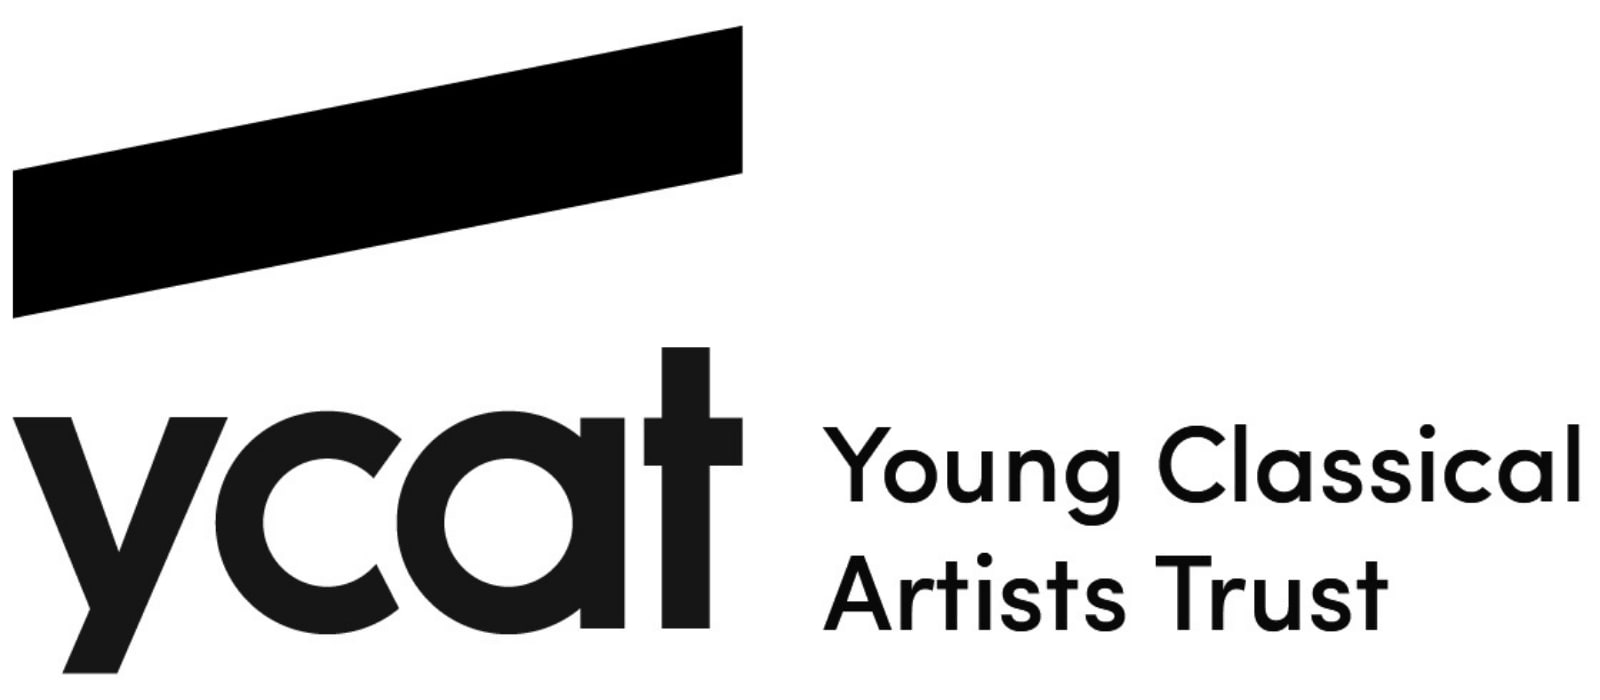 YCAT launches three new residencies